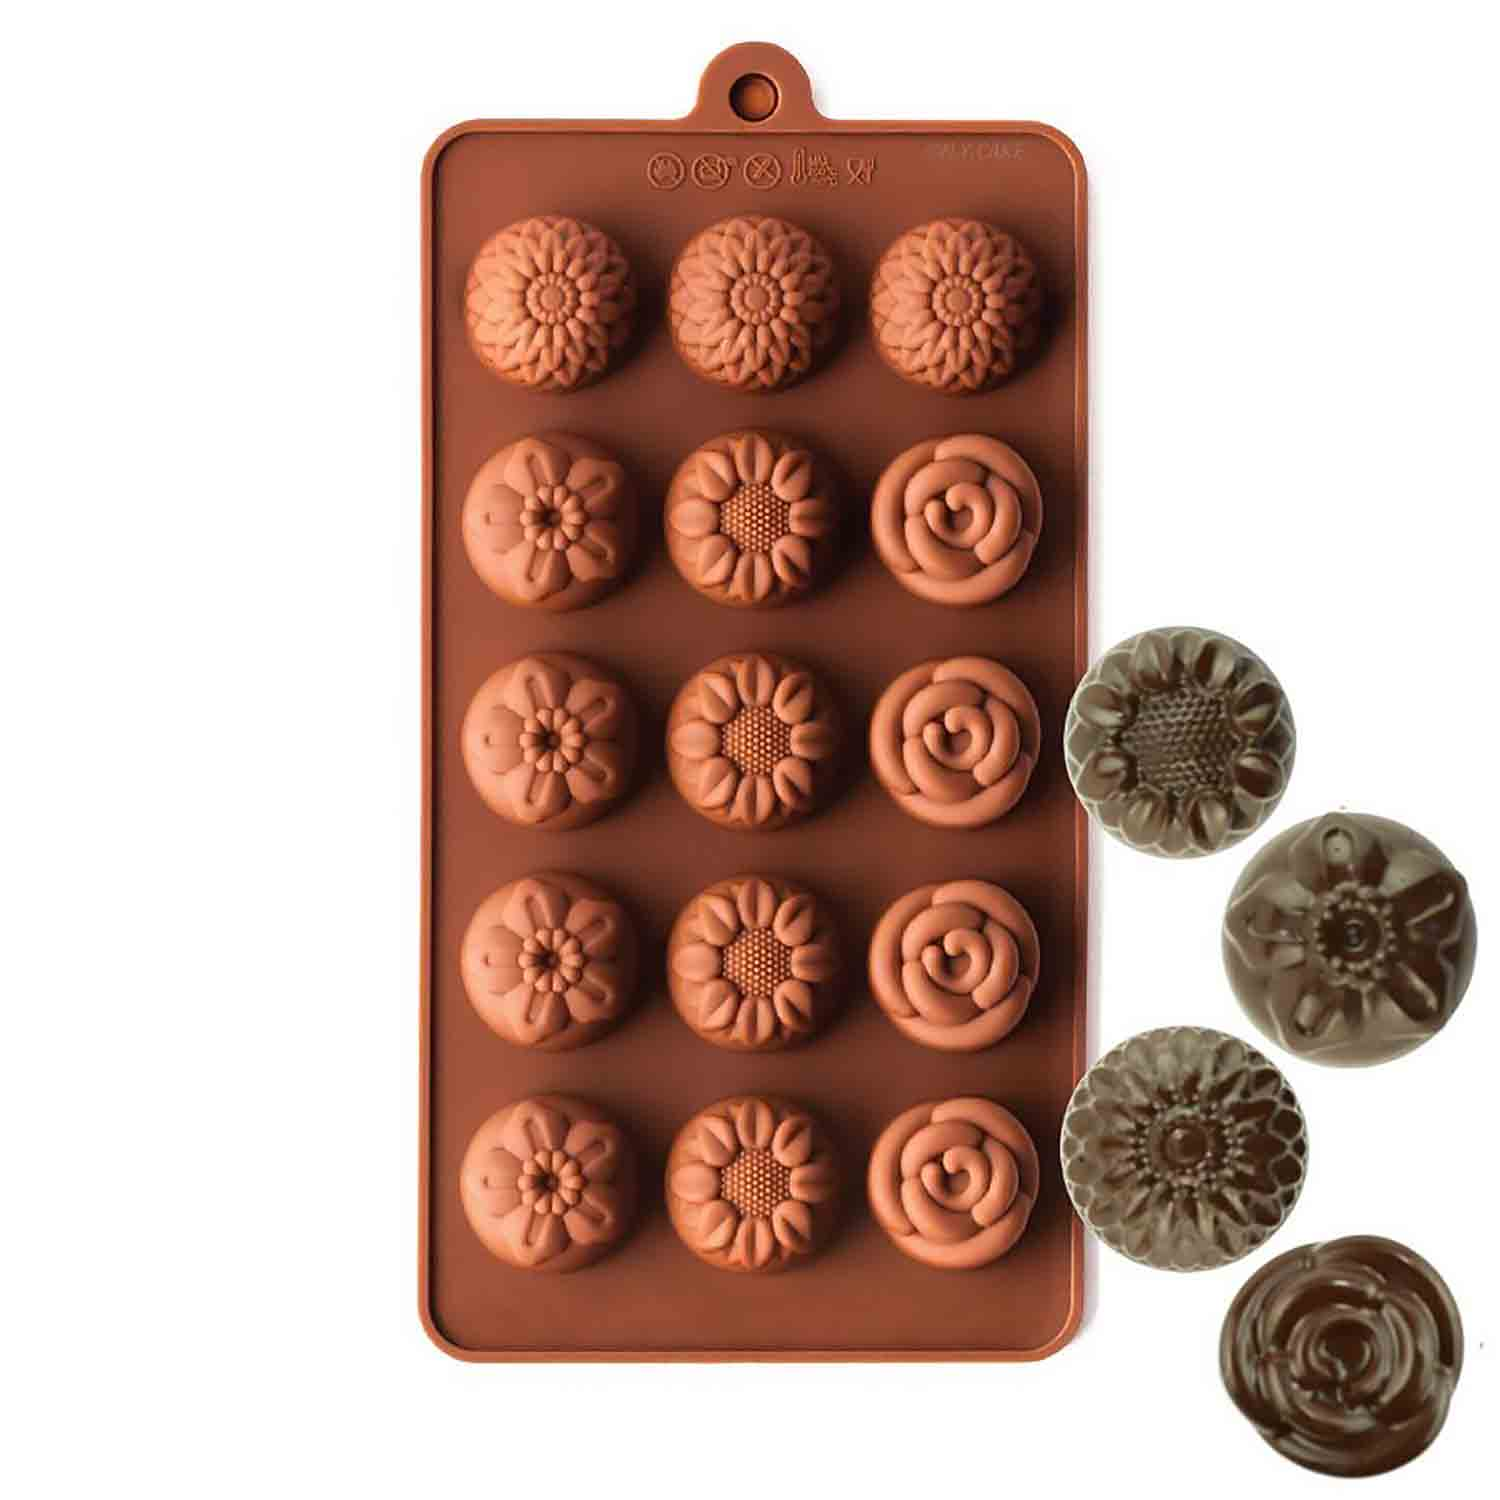 Flower Assortment Silicone Chocolate Candy Mold